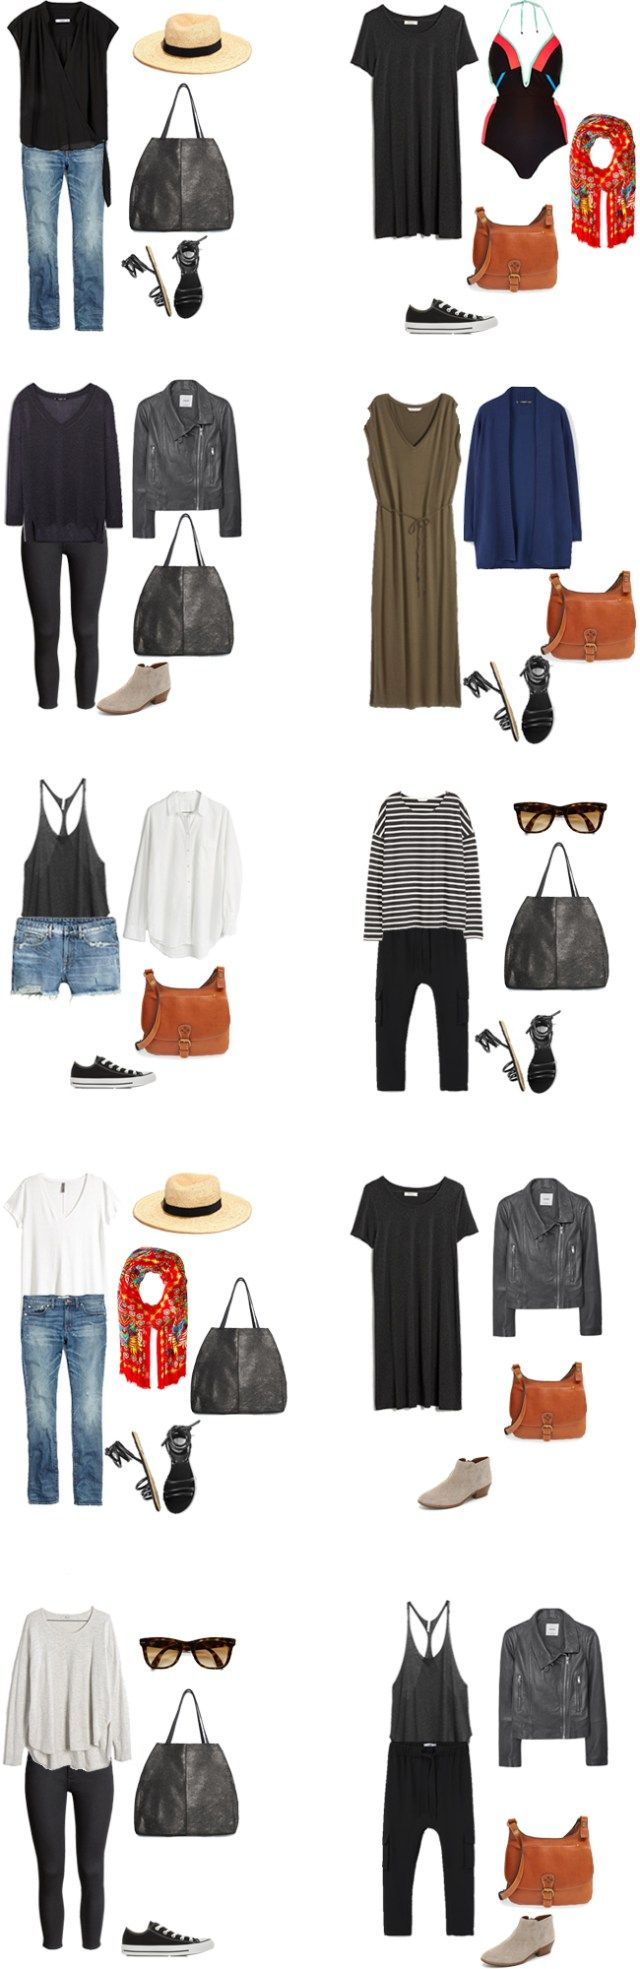 What tp Wear in Greece and Belgium Outfit Options 21-30 #packinglight #travellight #traveltips #travel